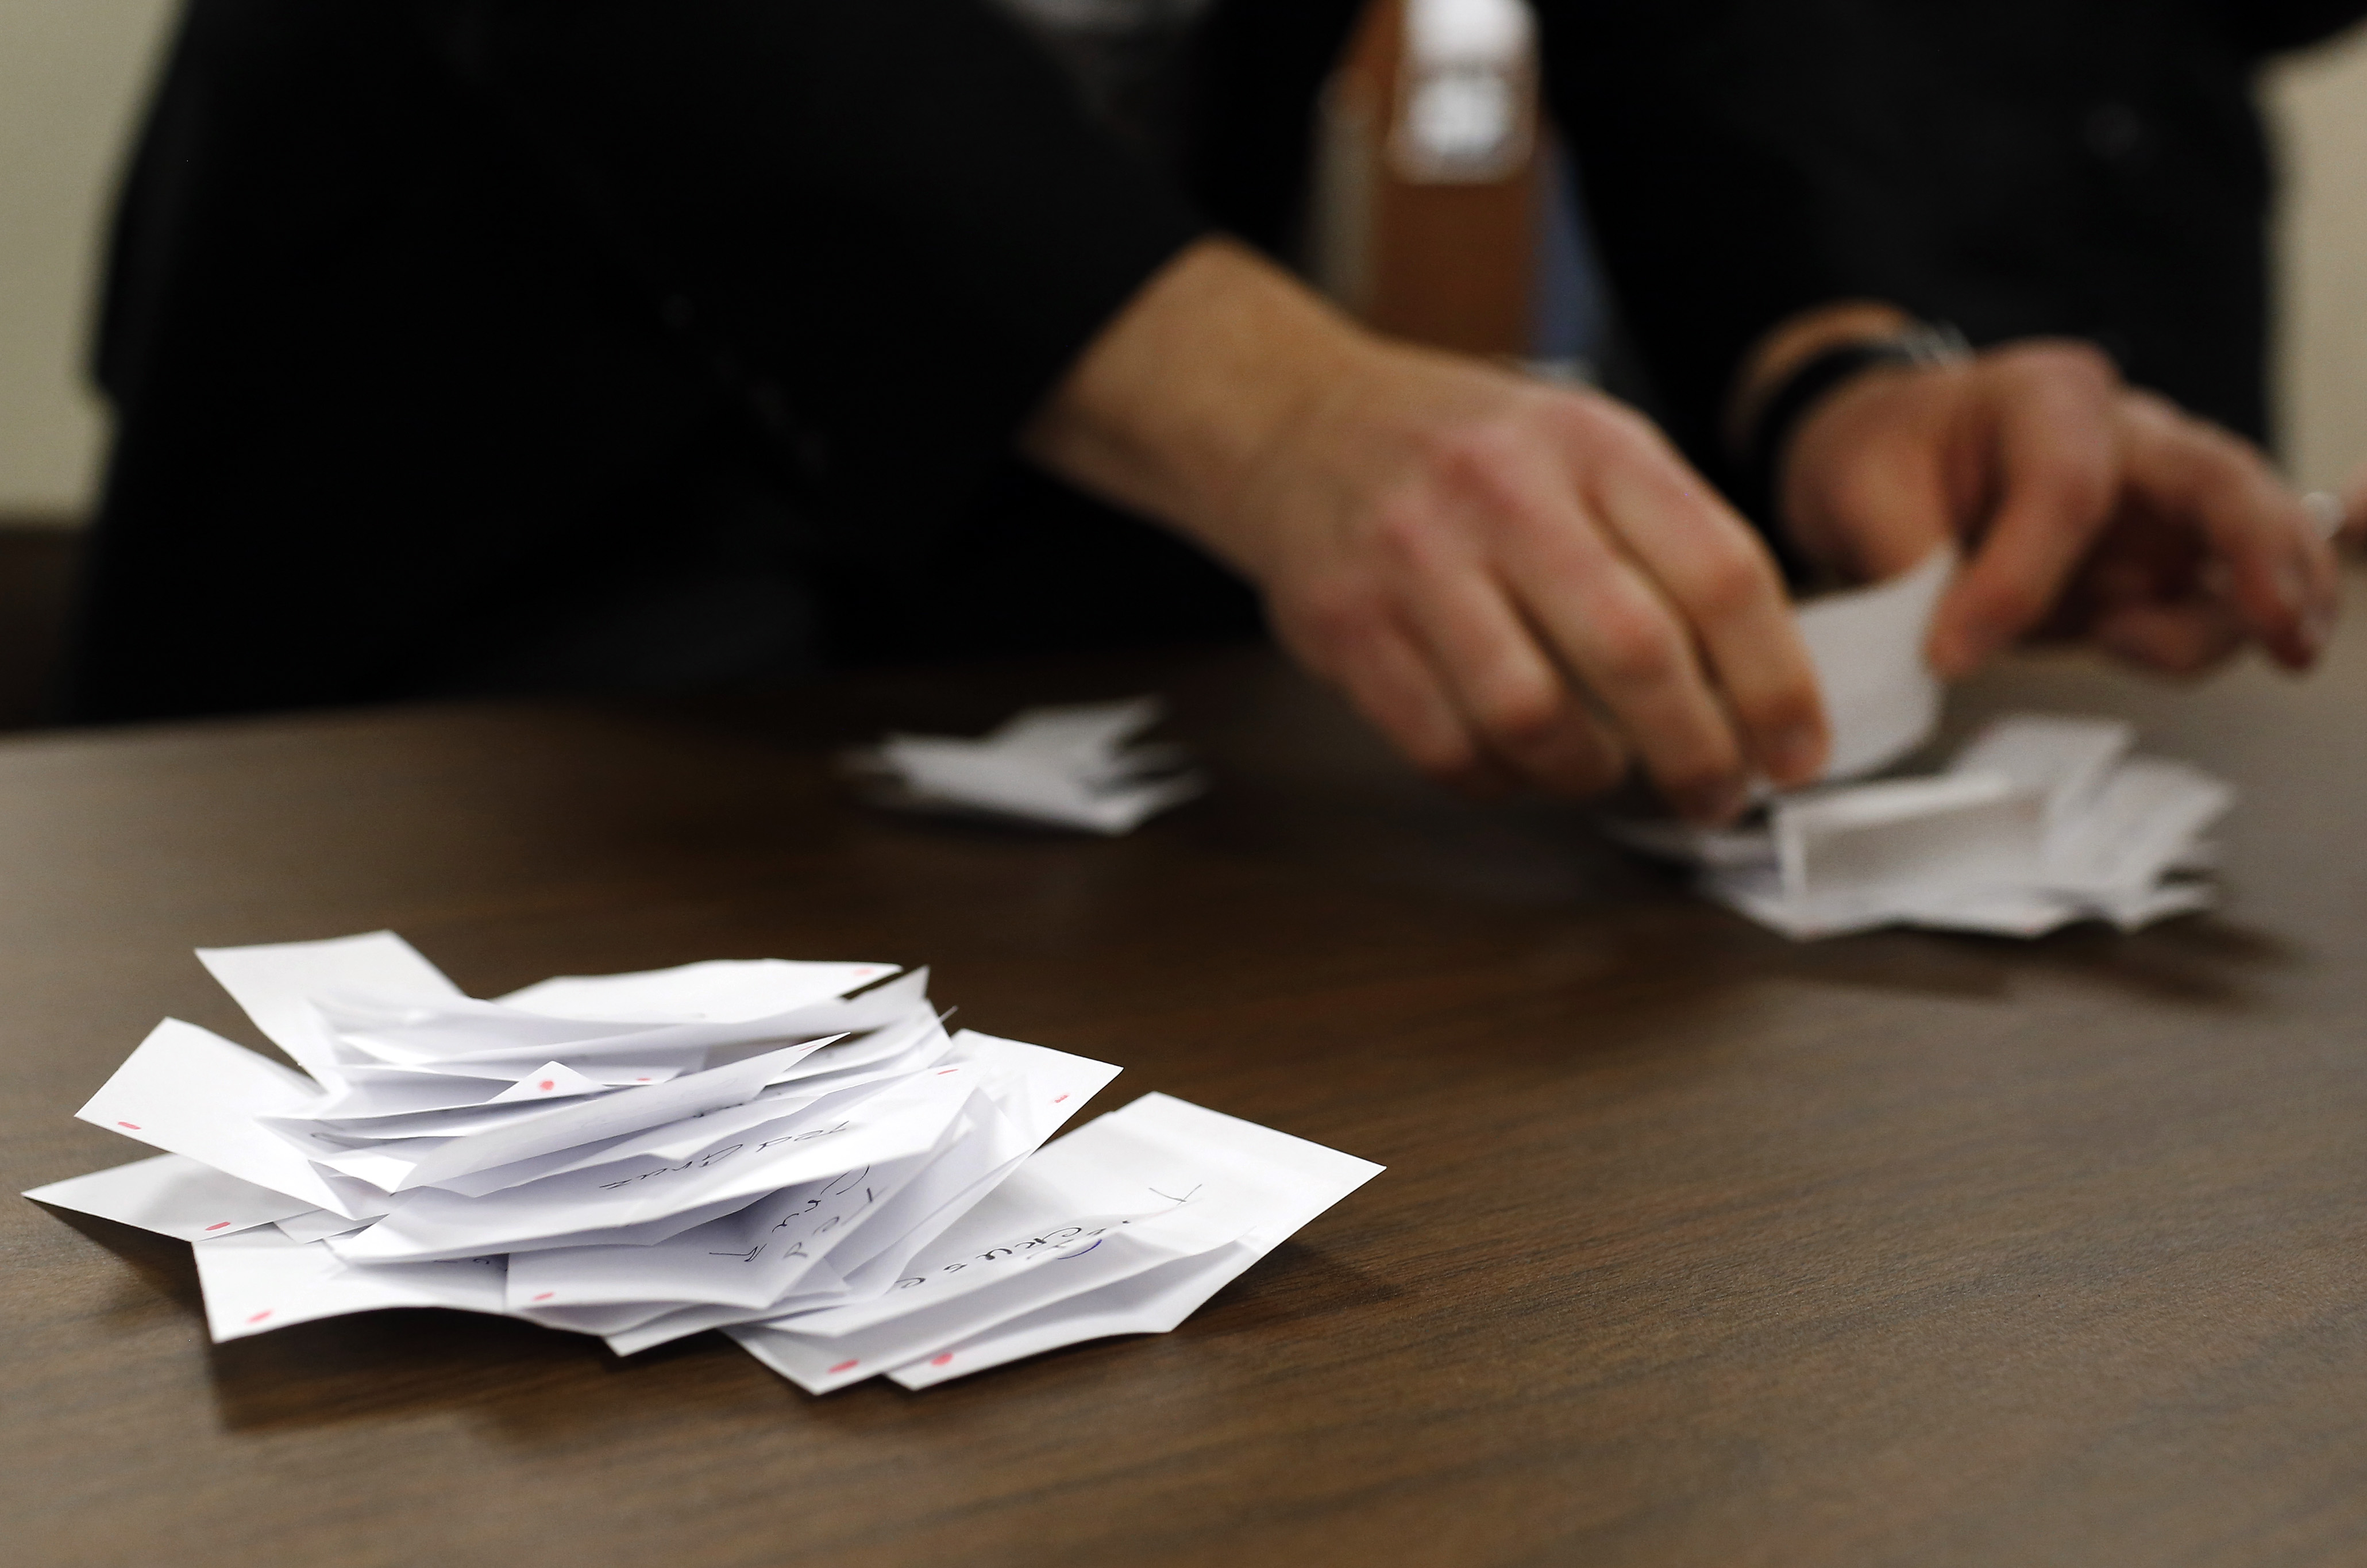 FILE - Precinct chair John Anderson counts votes for Republican candidates during a caucus in Nevada, Iowa, Monday, Feb. 1, 2016.